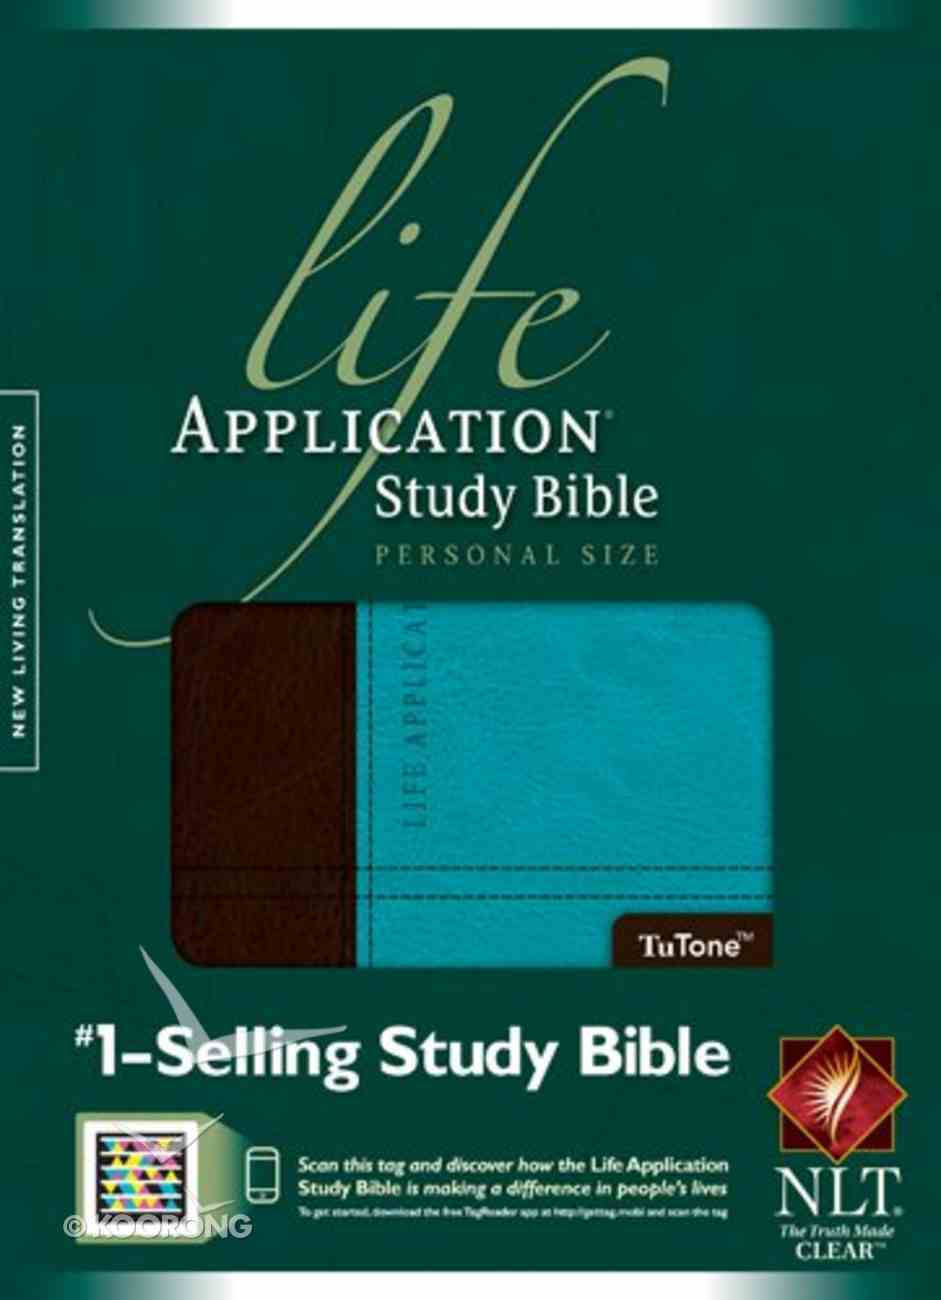 NLT Life Application Study Bible Personal Size Dark Brown/Teal (Black Letter Edition) Imitation Leather